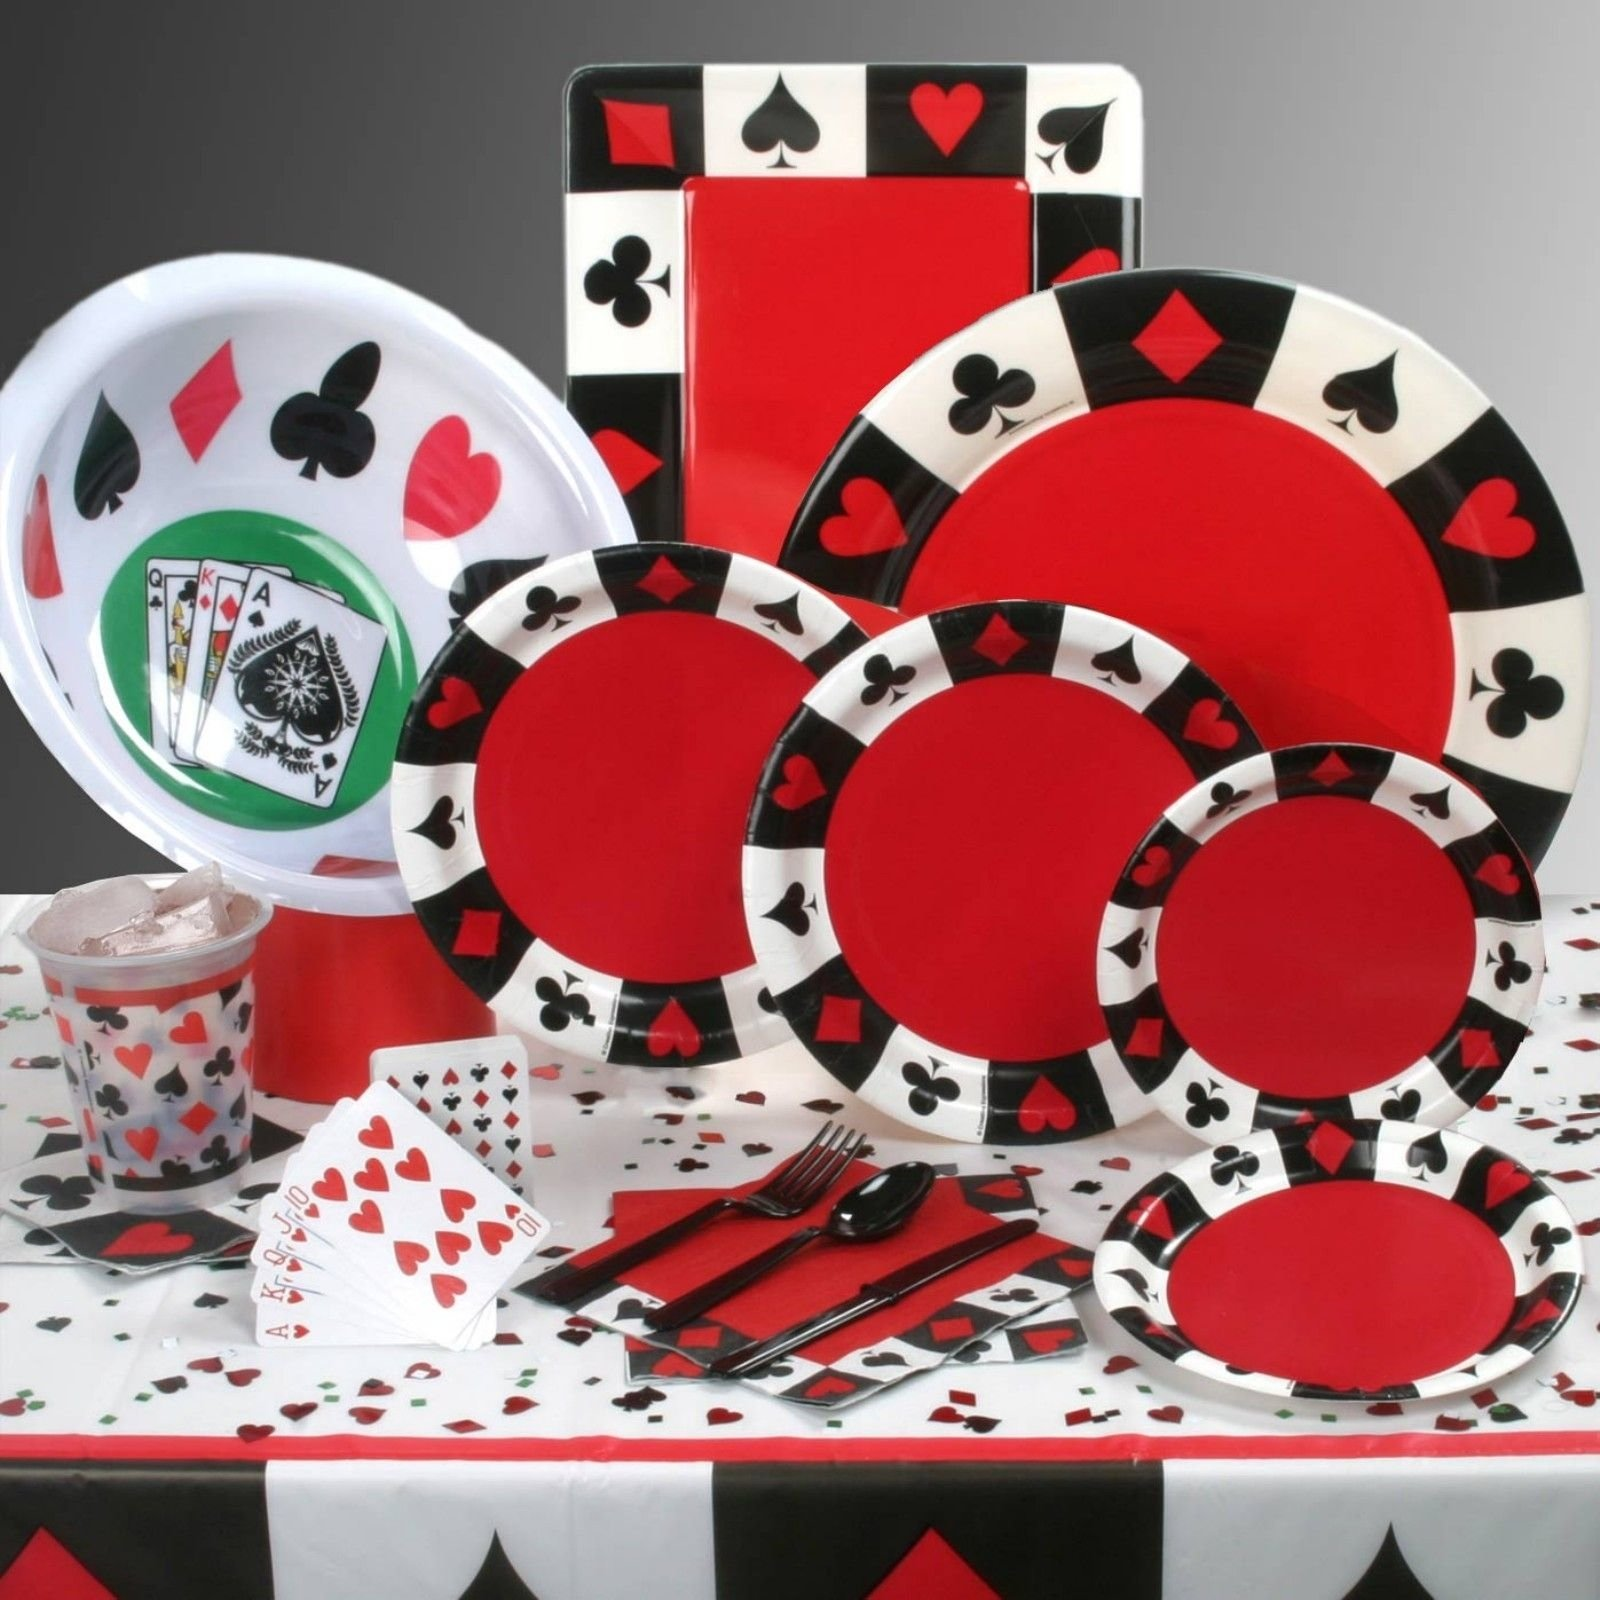 10 Perfect Casino Party Ideas For Adults casino themed party ideas wallpaper birthday party supplies for 2021